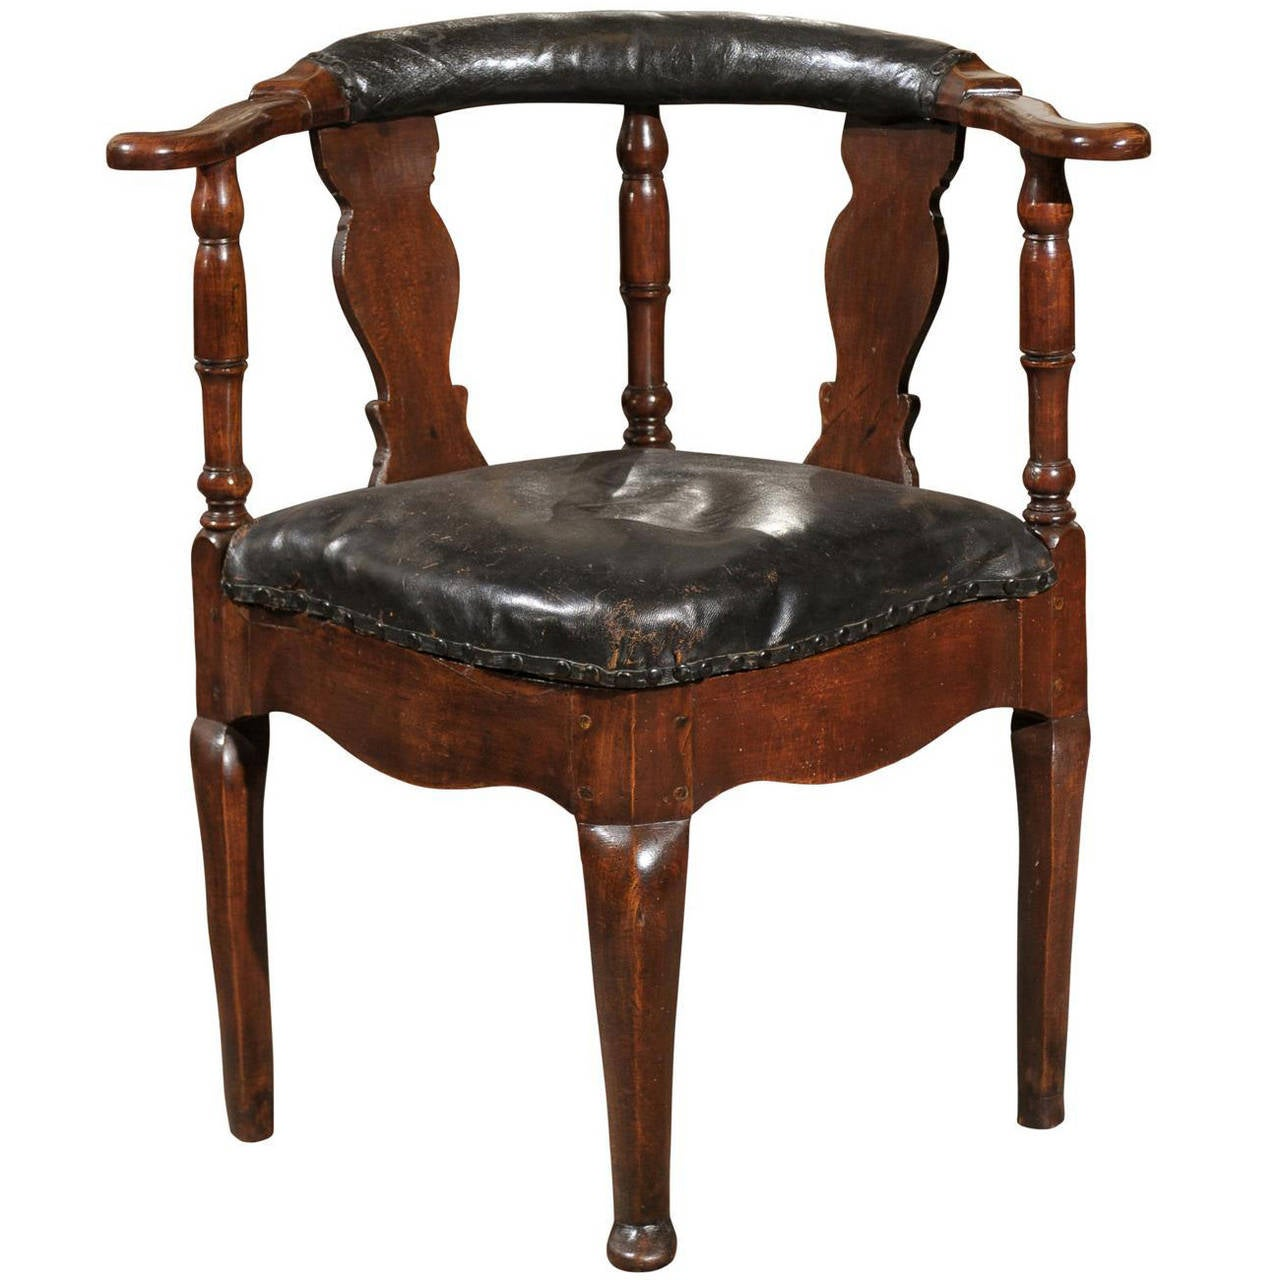 18th Century Danish Corner Chair In Black Leather